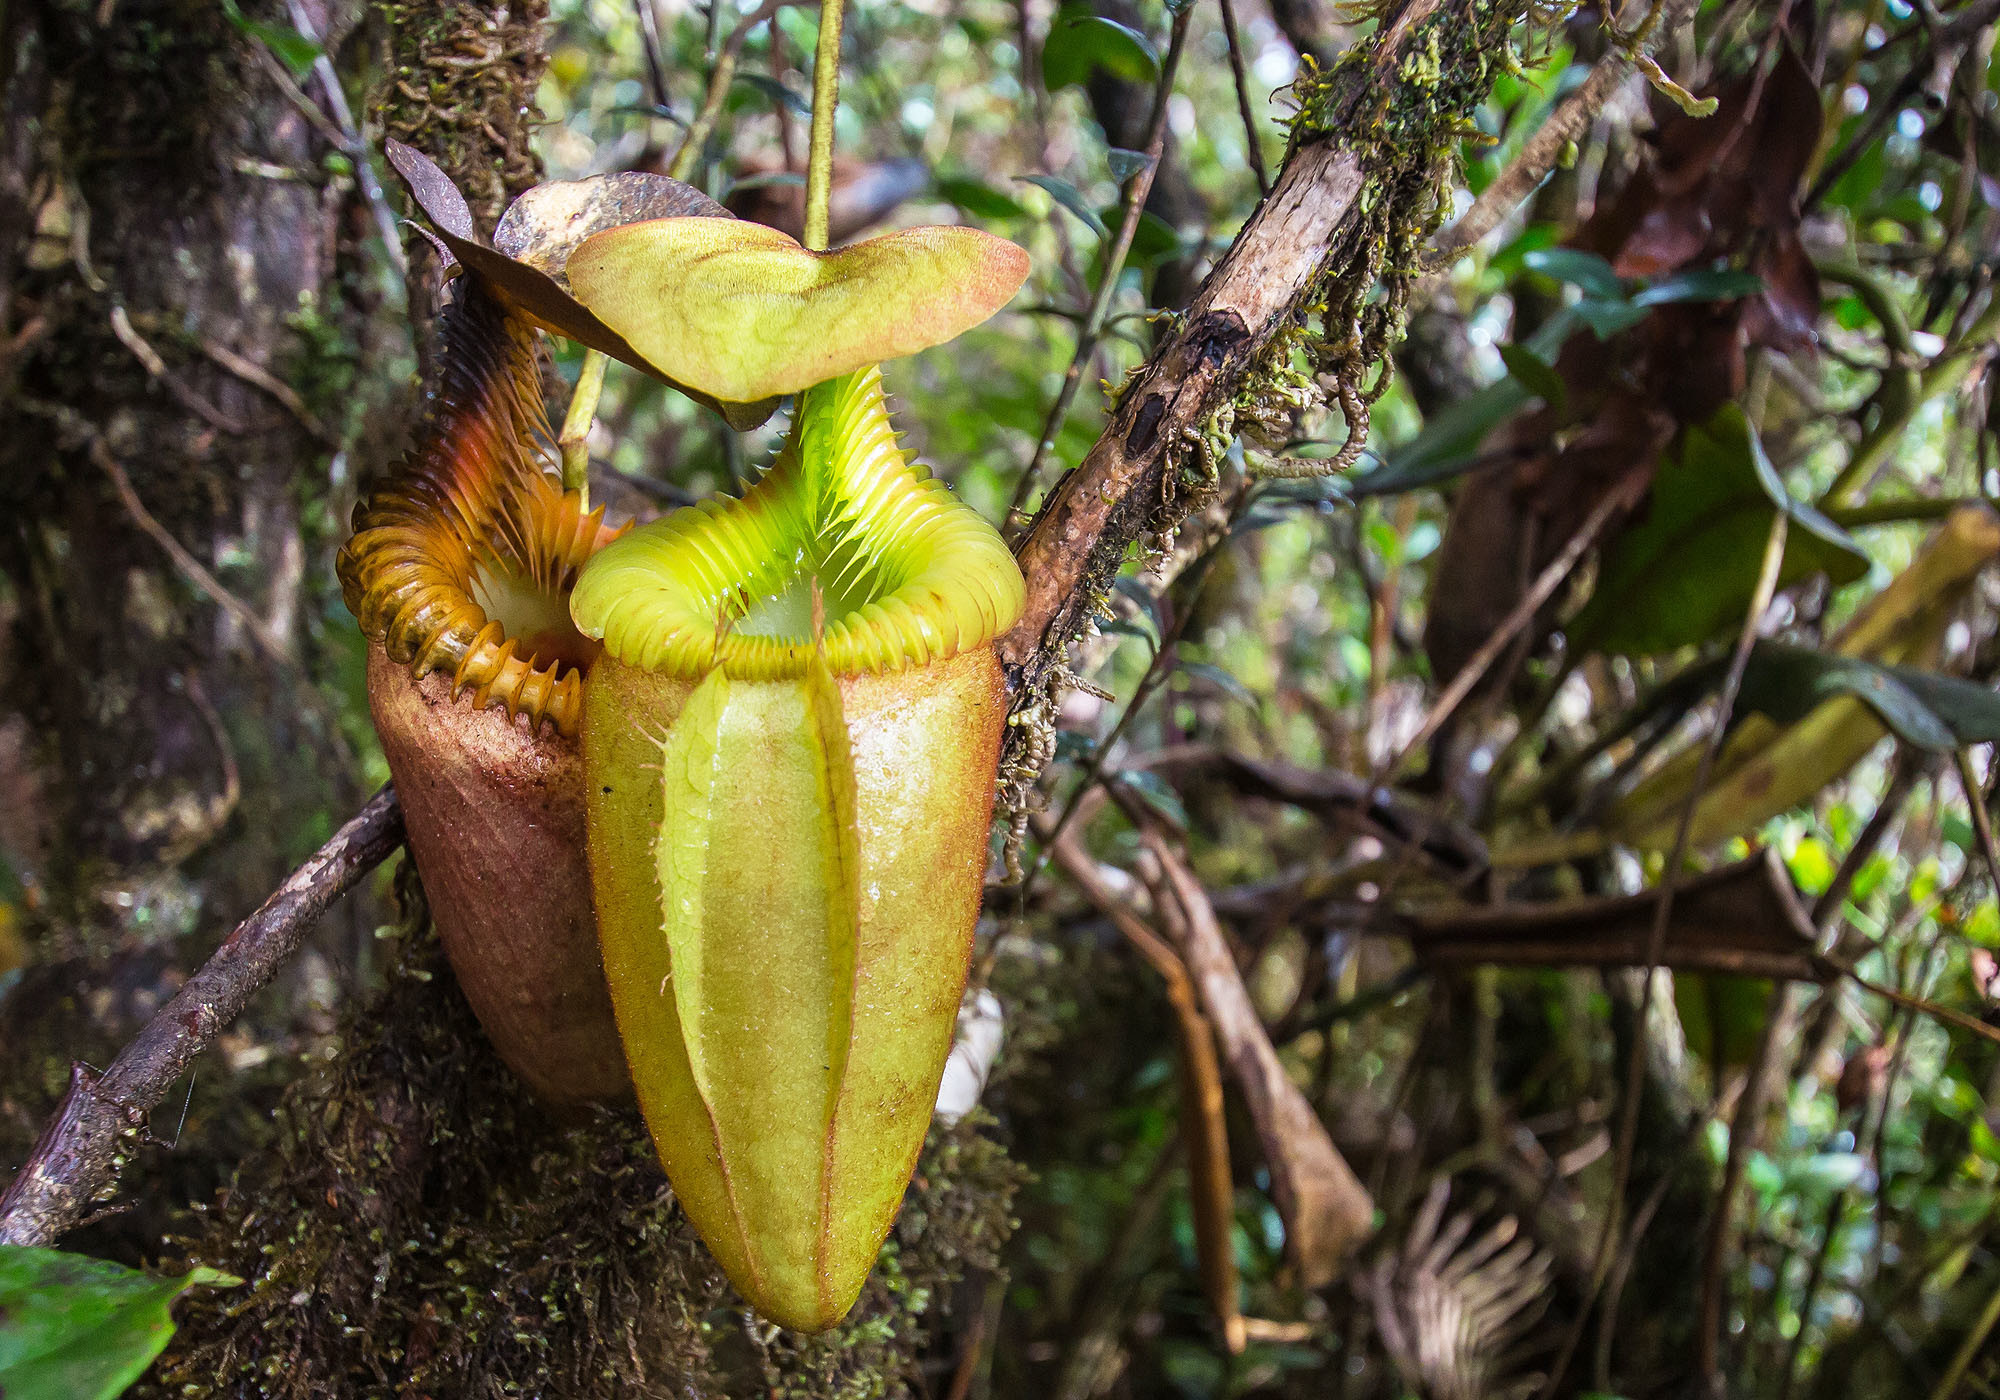 A carnivorous, giant pitcher plant